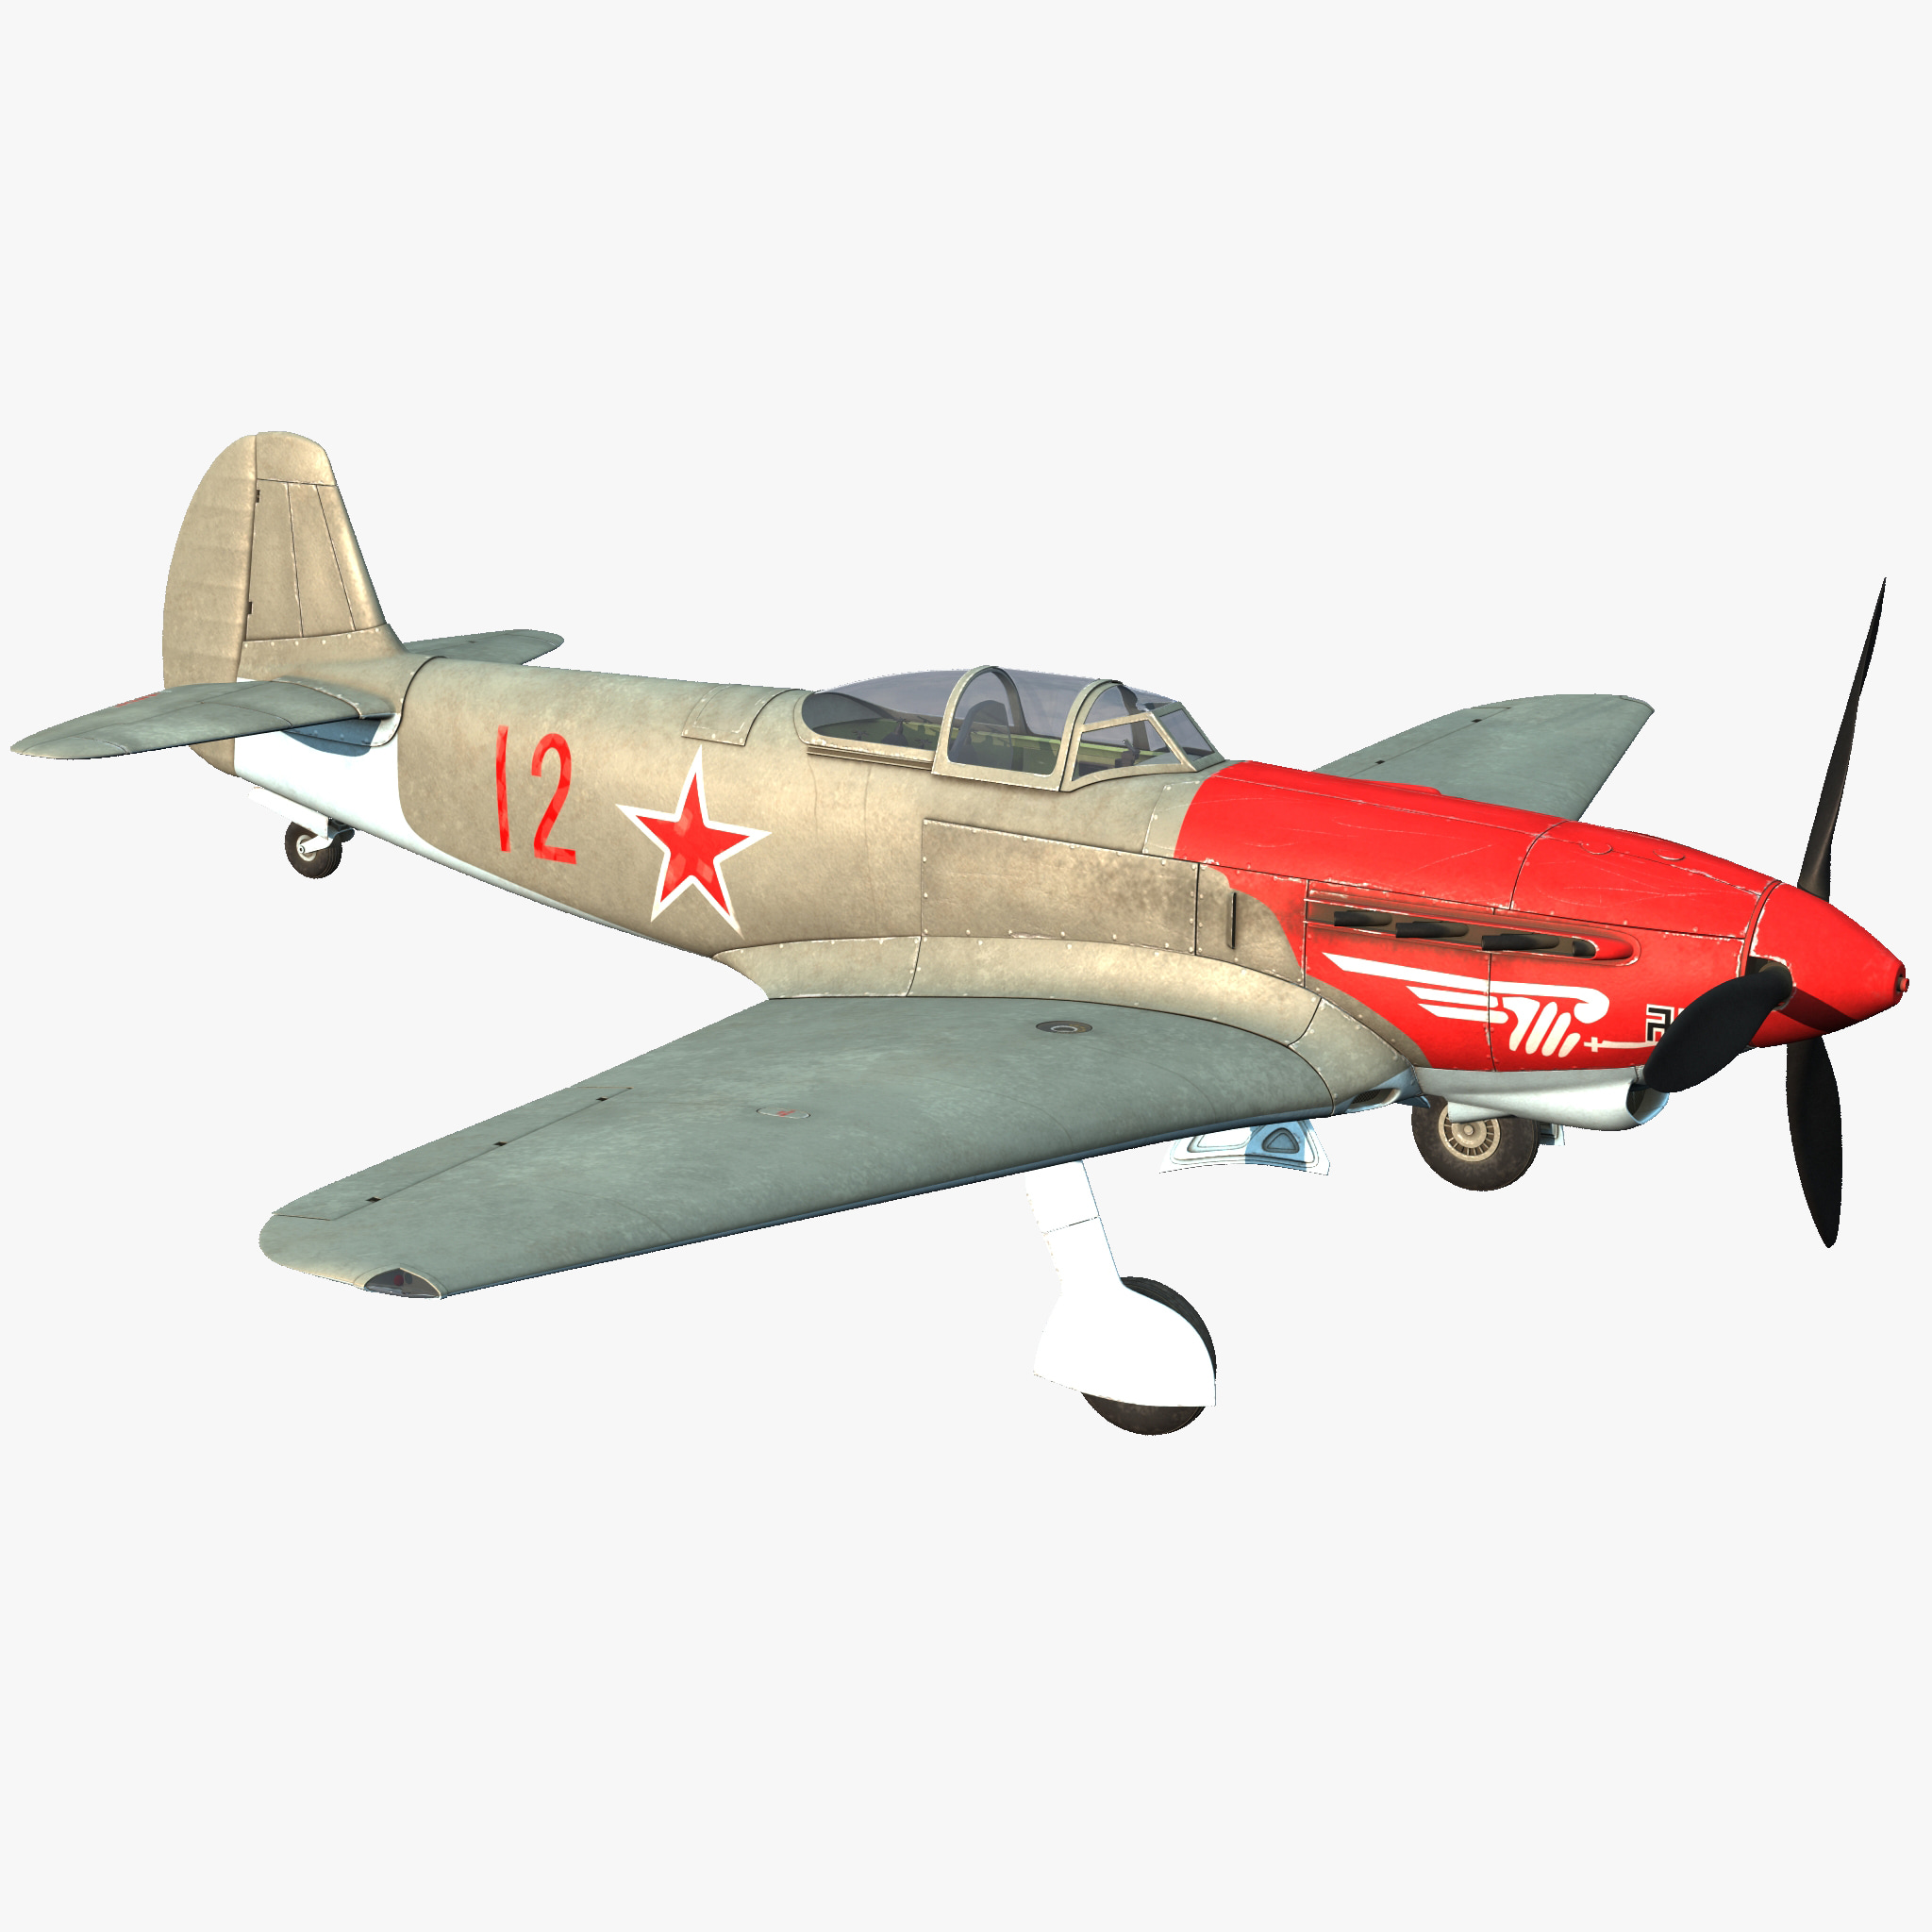 Yakovlev Yak-9 Soviet World War II Fighter_164.jpg